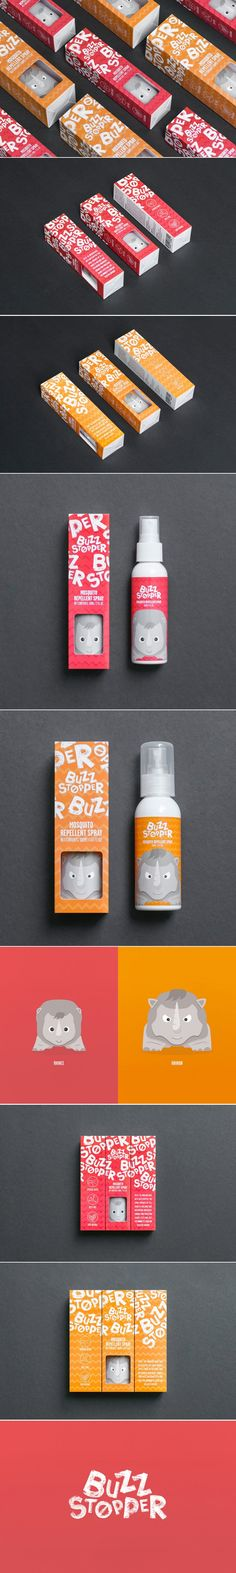 This is The Most Adorable Insect Repellent We've Ever Seen — The Dieline | Packaging & Branding Design & Innovation News